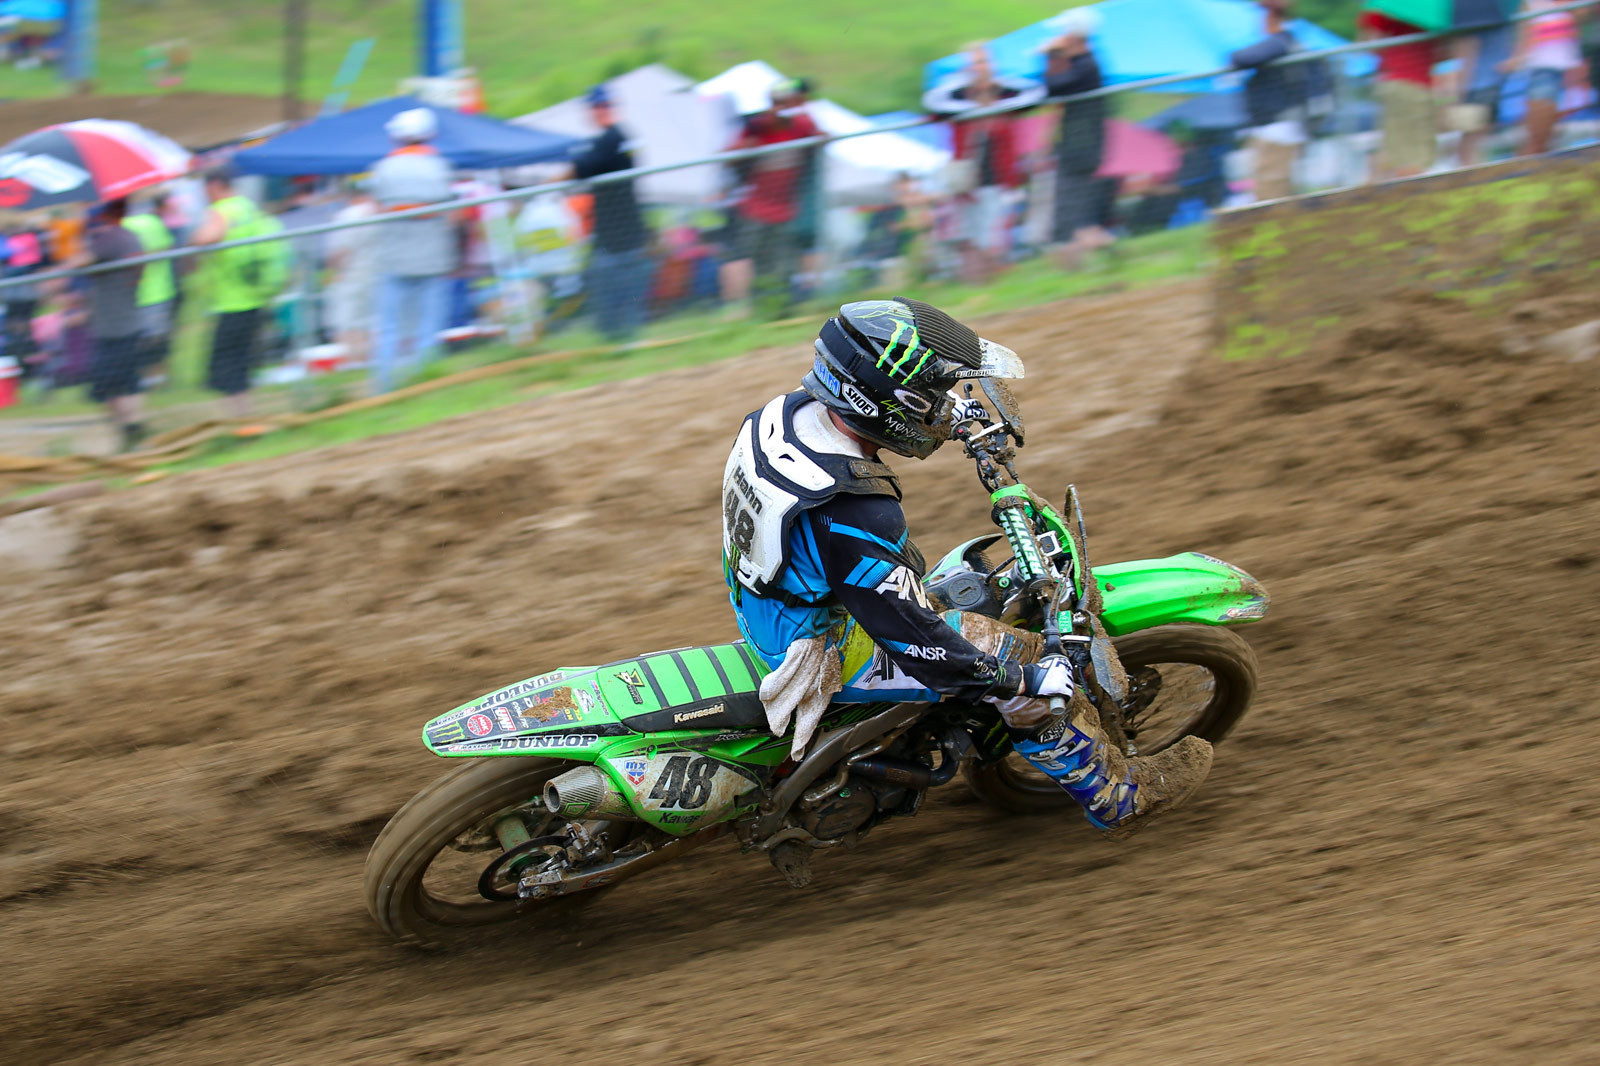 2015 Budds Creek Motocross National